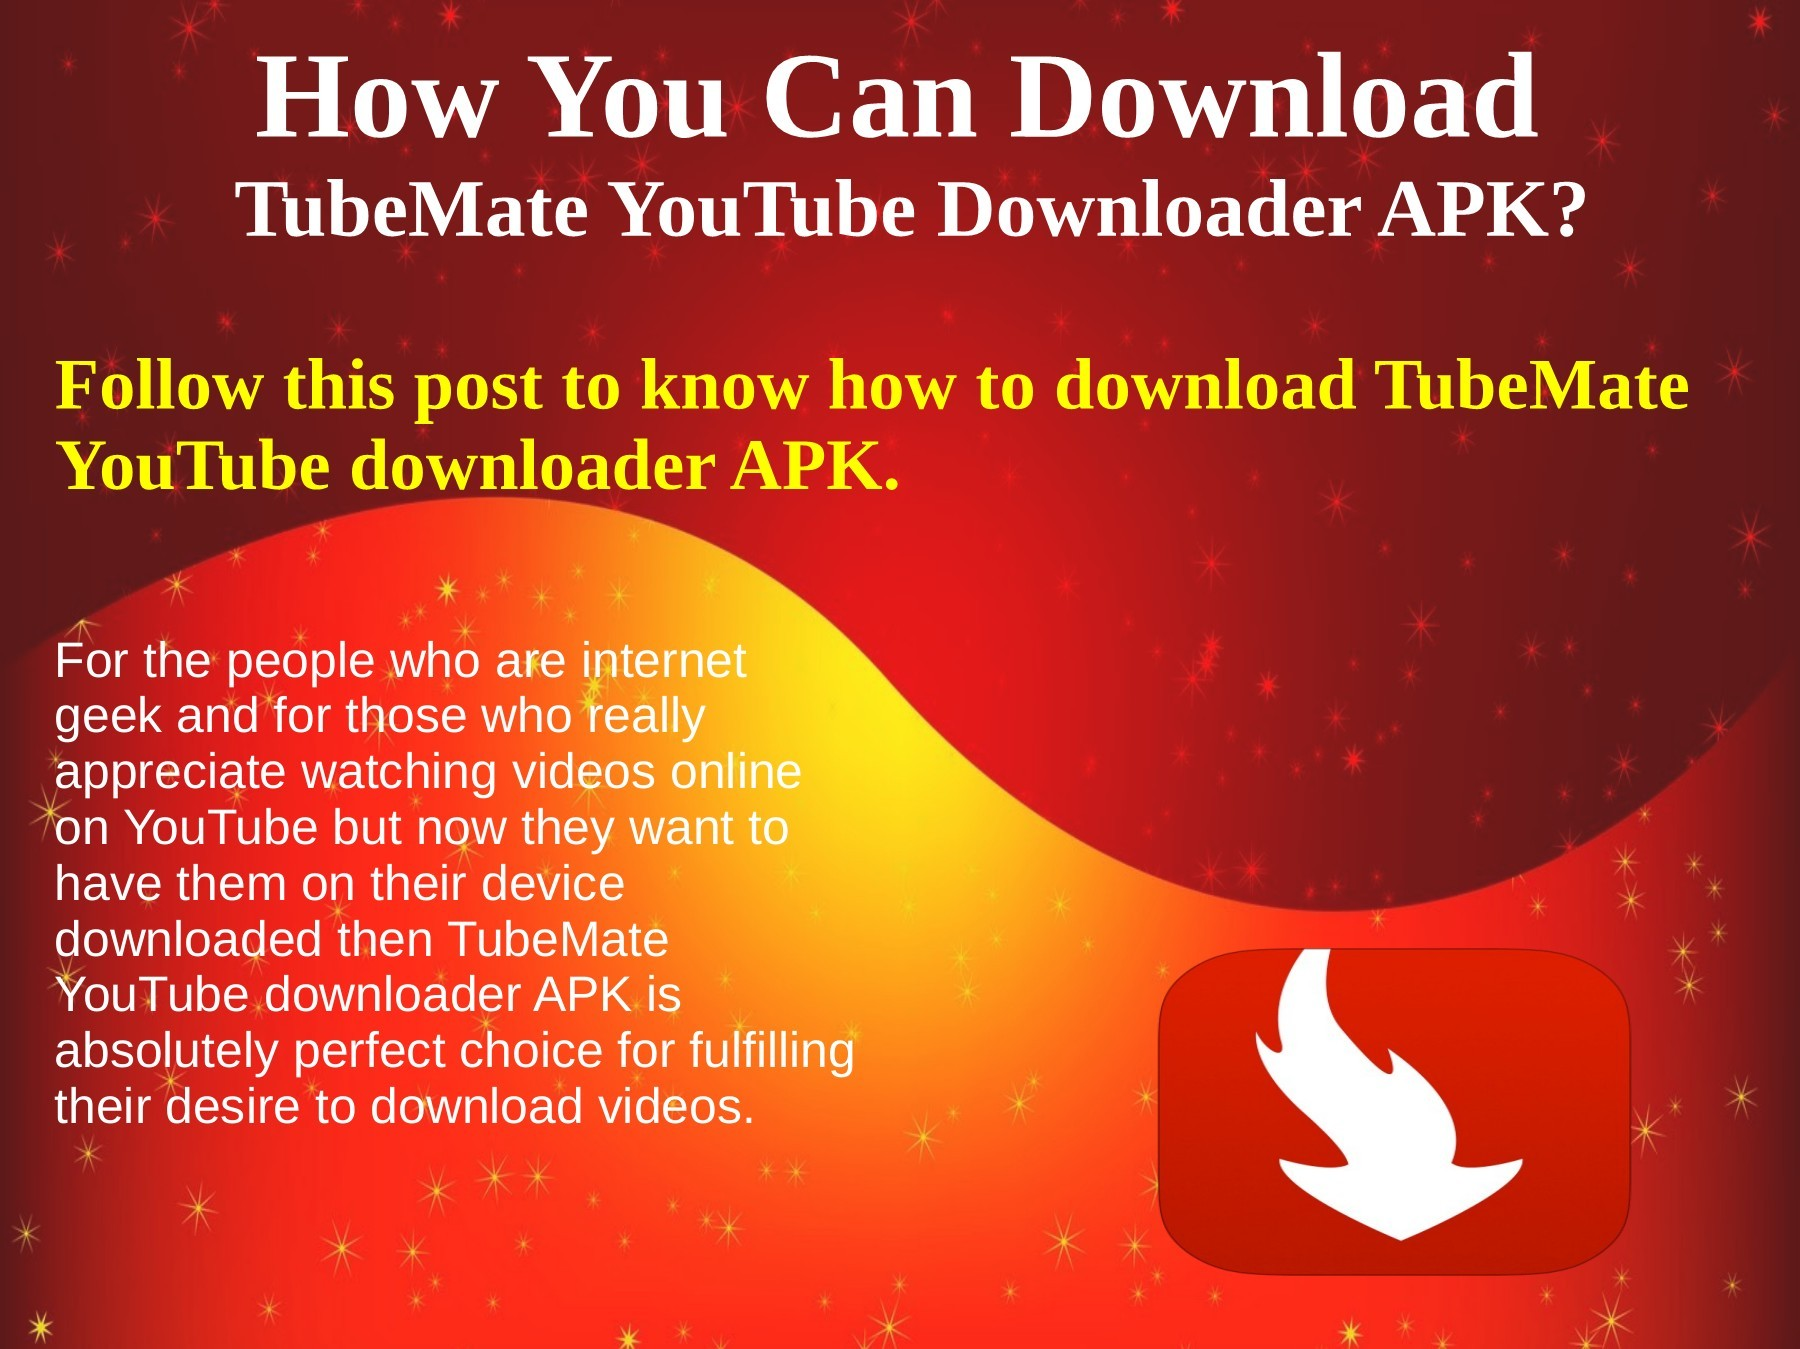 How you can download TubeMate YouTube downloader APK | PubHTML5